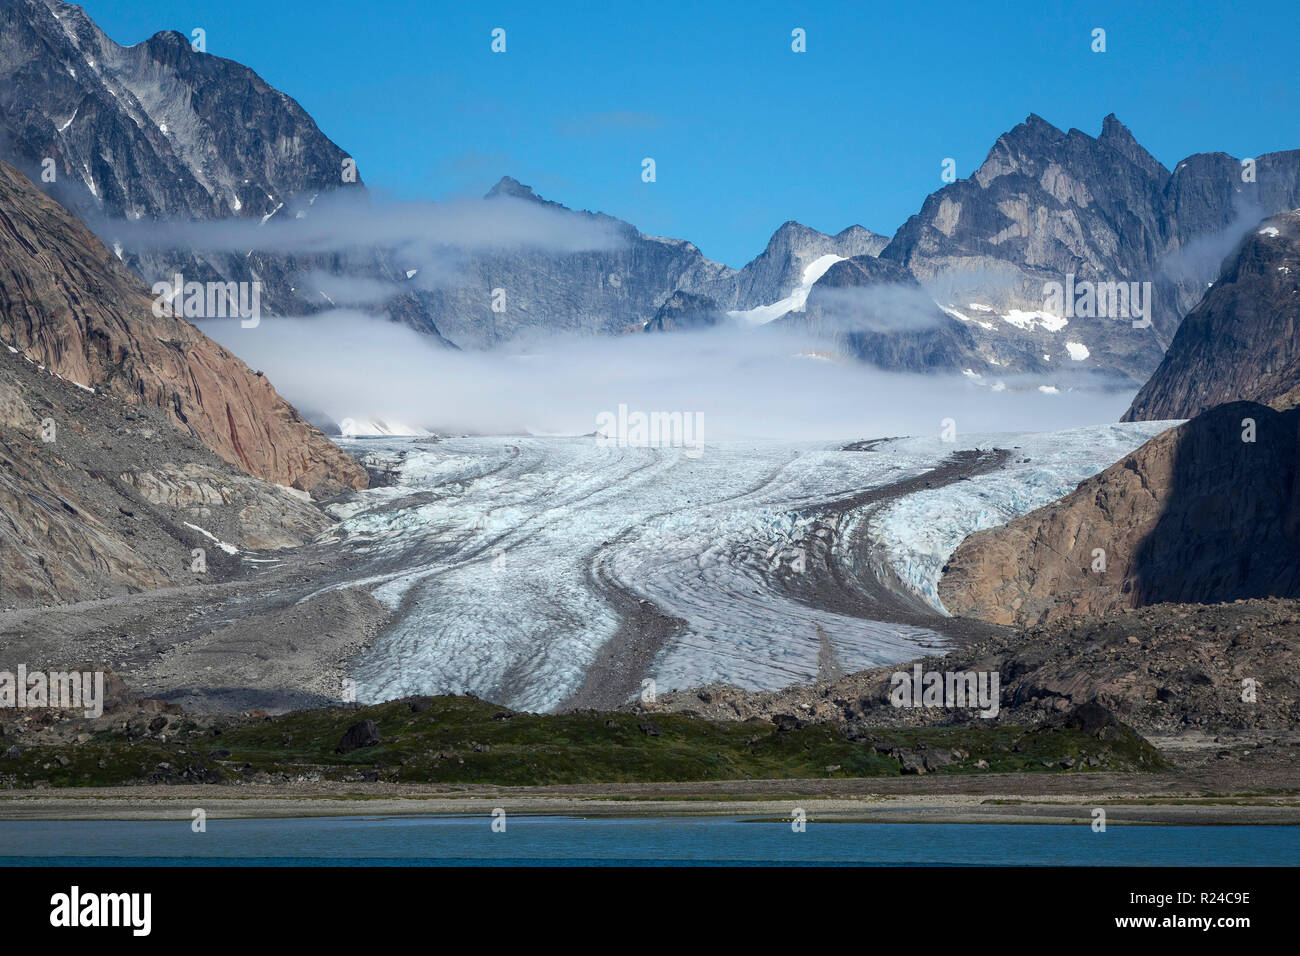 Glacier and peaks, Prince Christian Sound, southern Greenland, Polar Regions - Stock Image